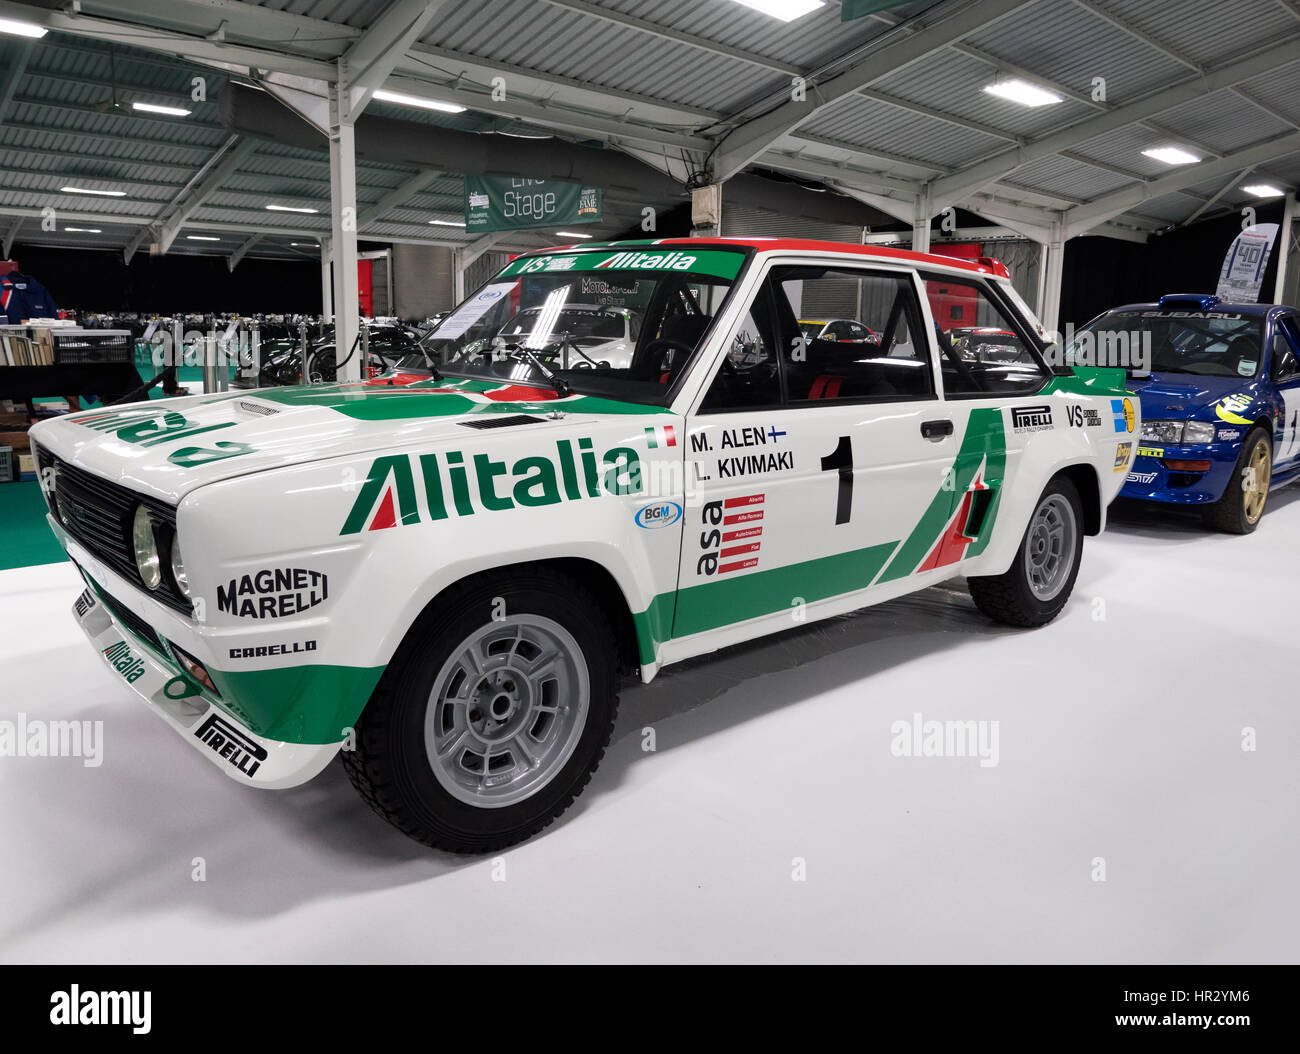 Fiat abarth rally images new hd car wallpaper